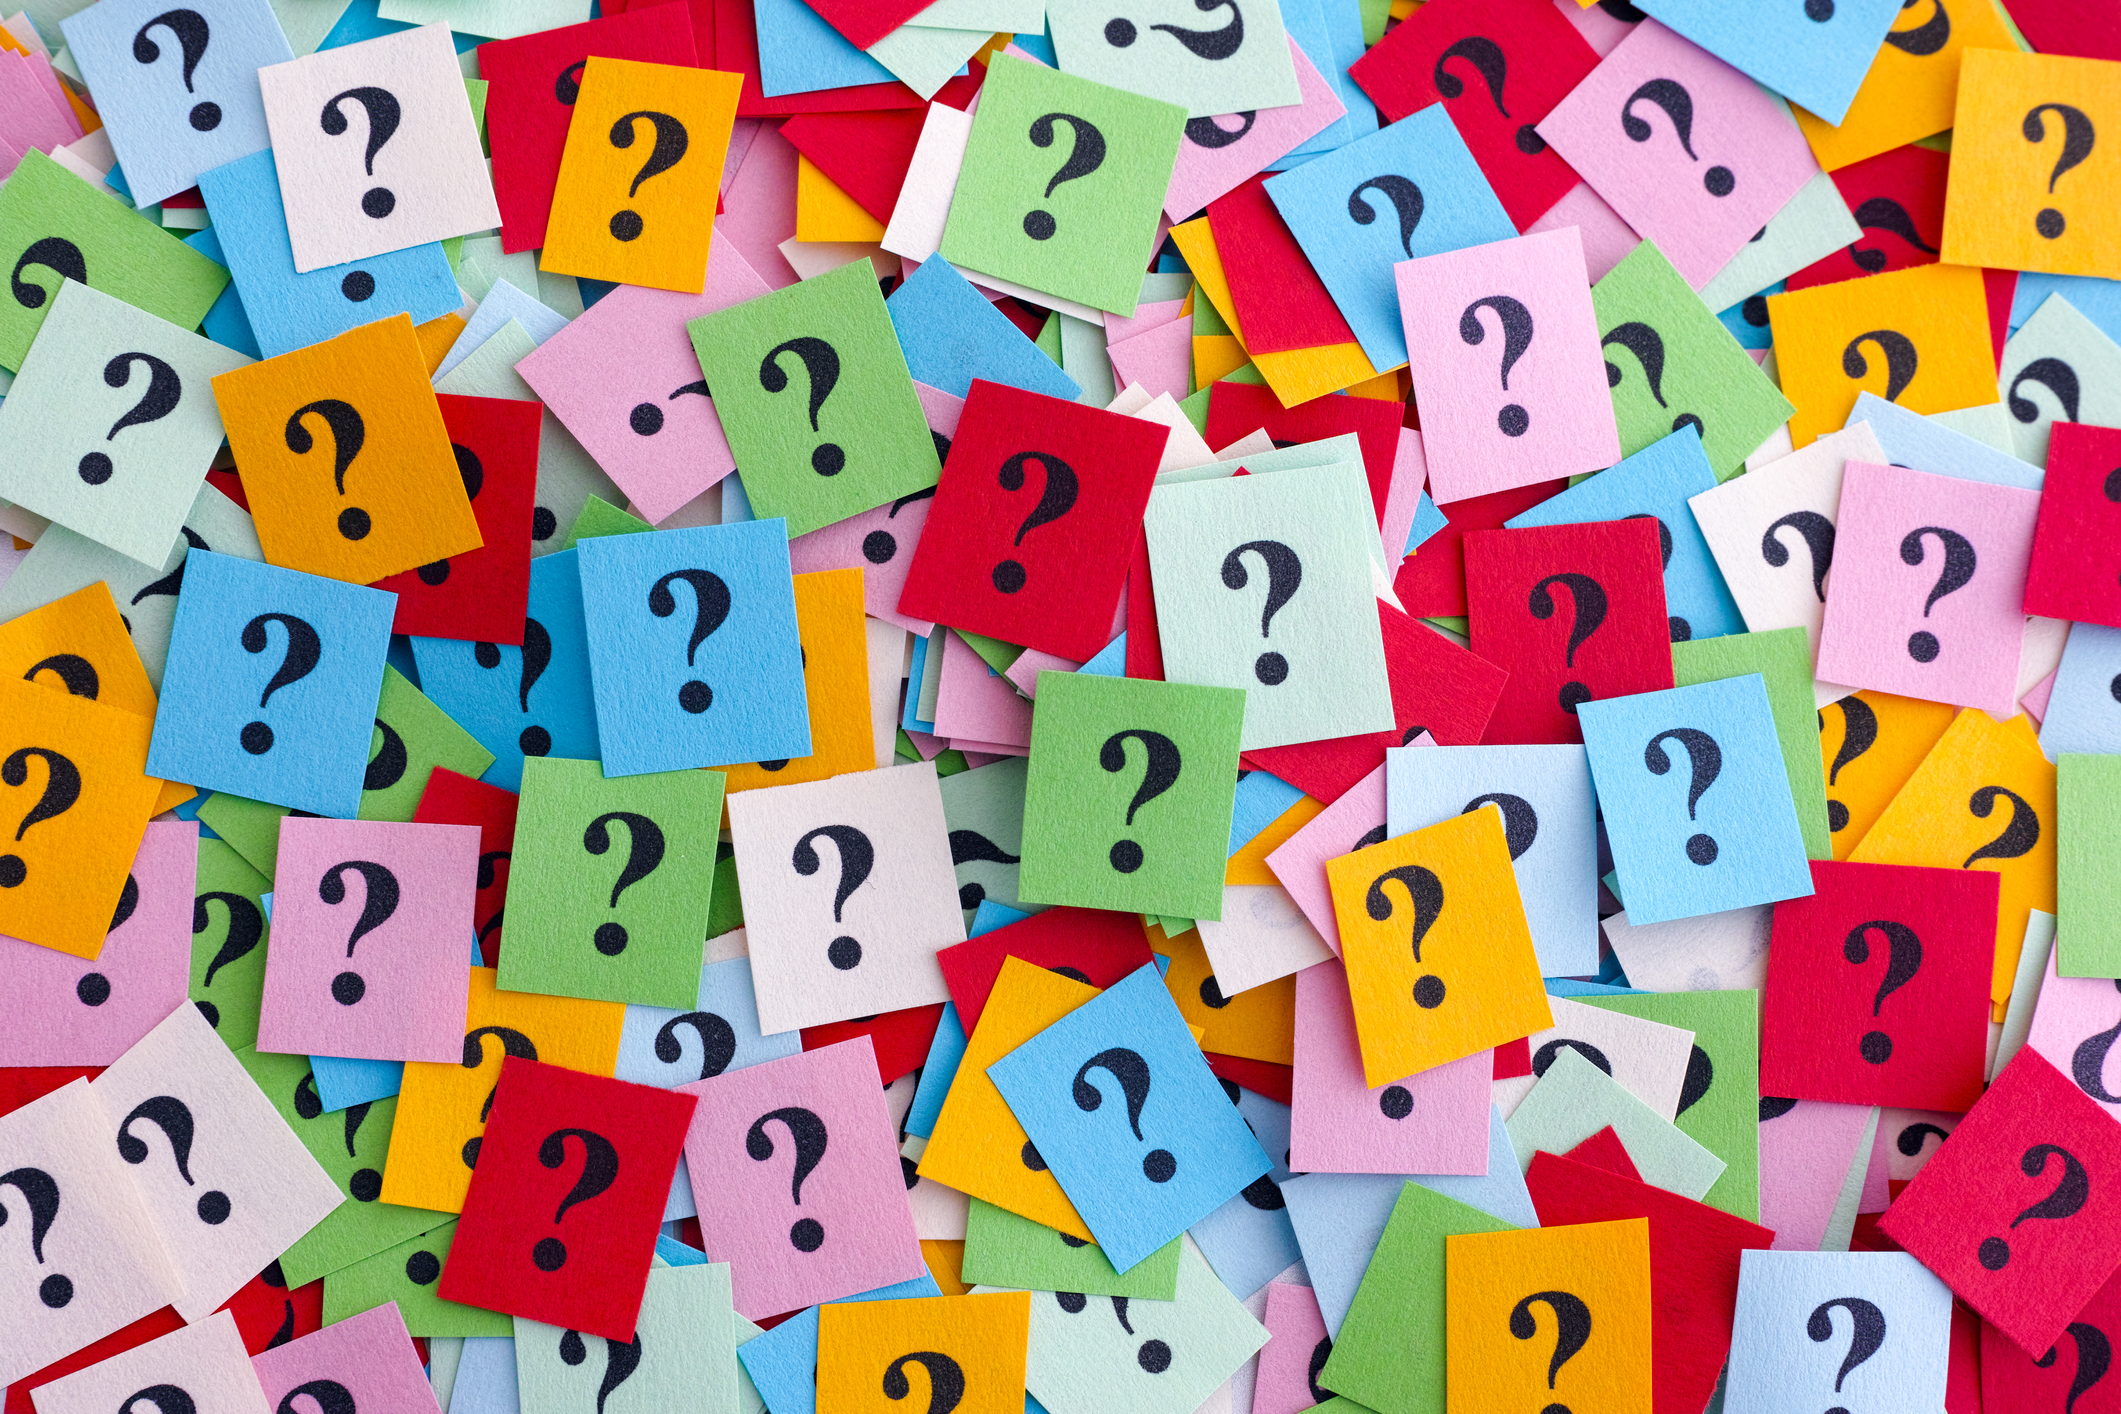 question marks on colorful post its